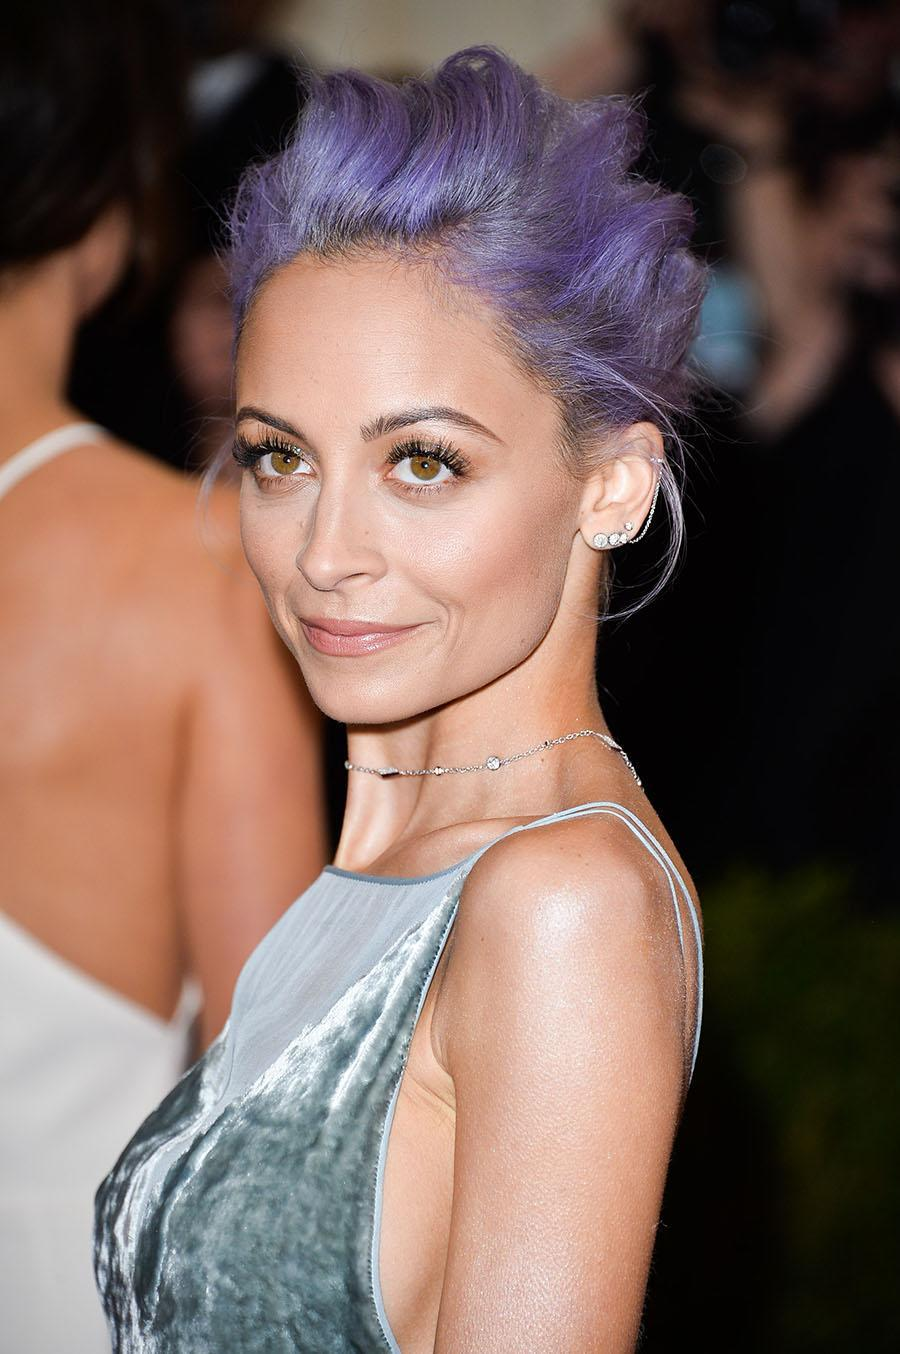 <p>Richie isn't afraid to play in the coloring box when it comes to trying new hair hues. Her soft lilac look is fire. (Photo: Getty Images) </p>